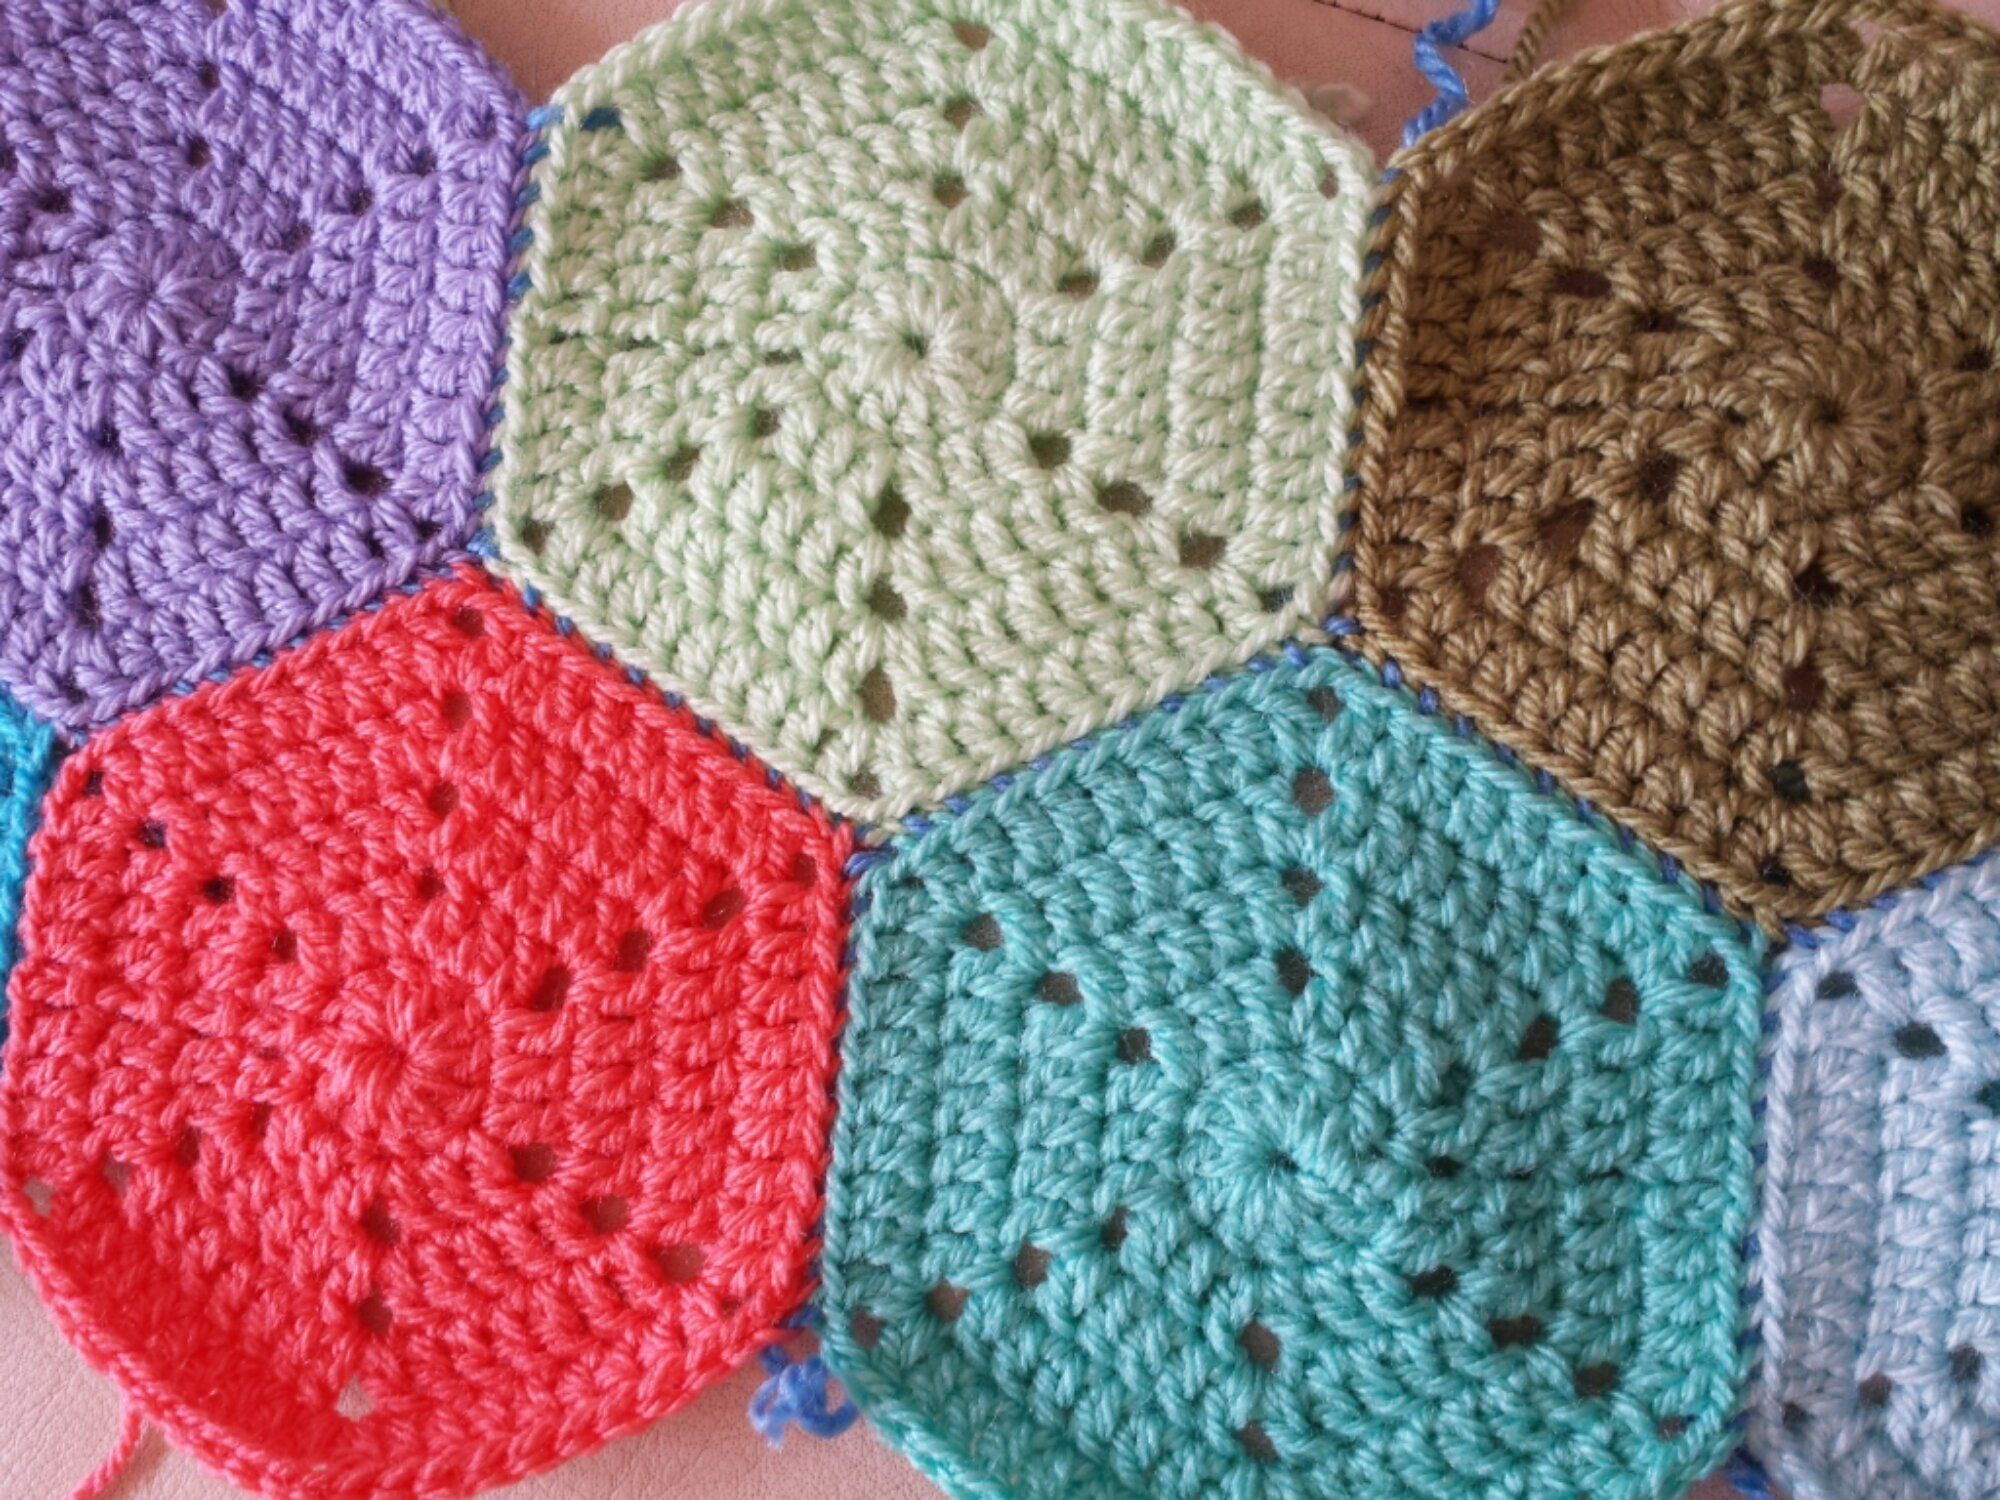 Solid hexagon crochet pattern patterns crochet and hexagon crochet filled hexagon block pattern in uk terms bankloansurffo Image collections